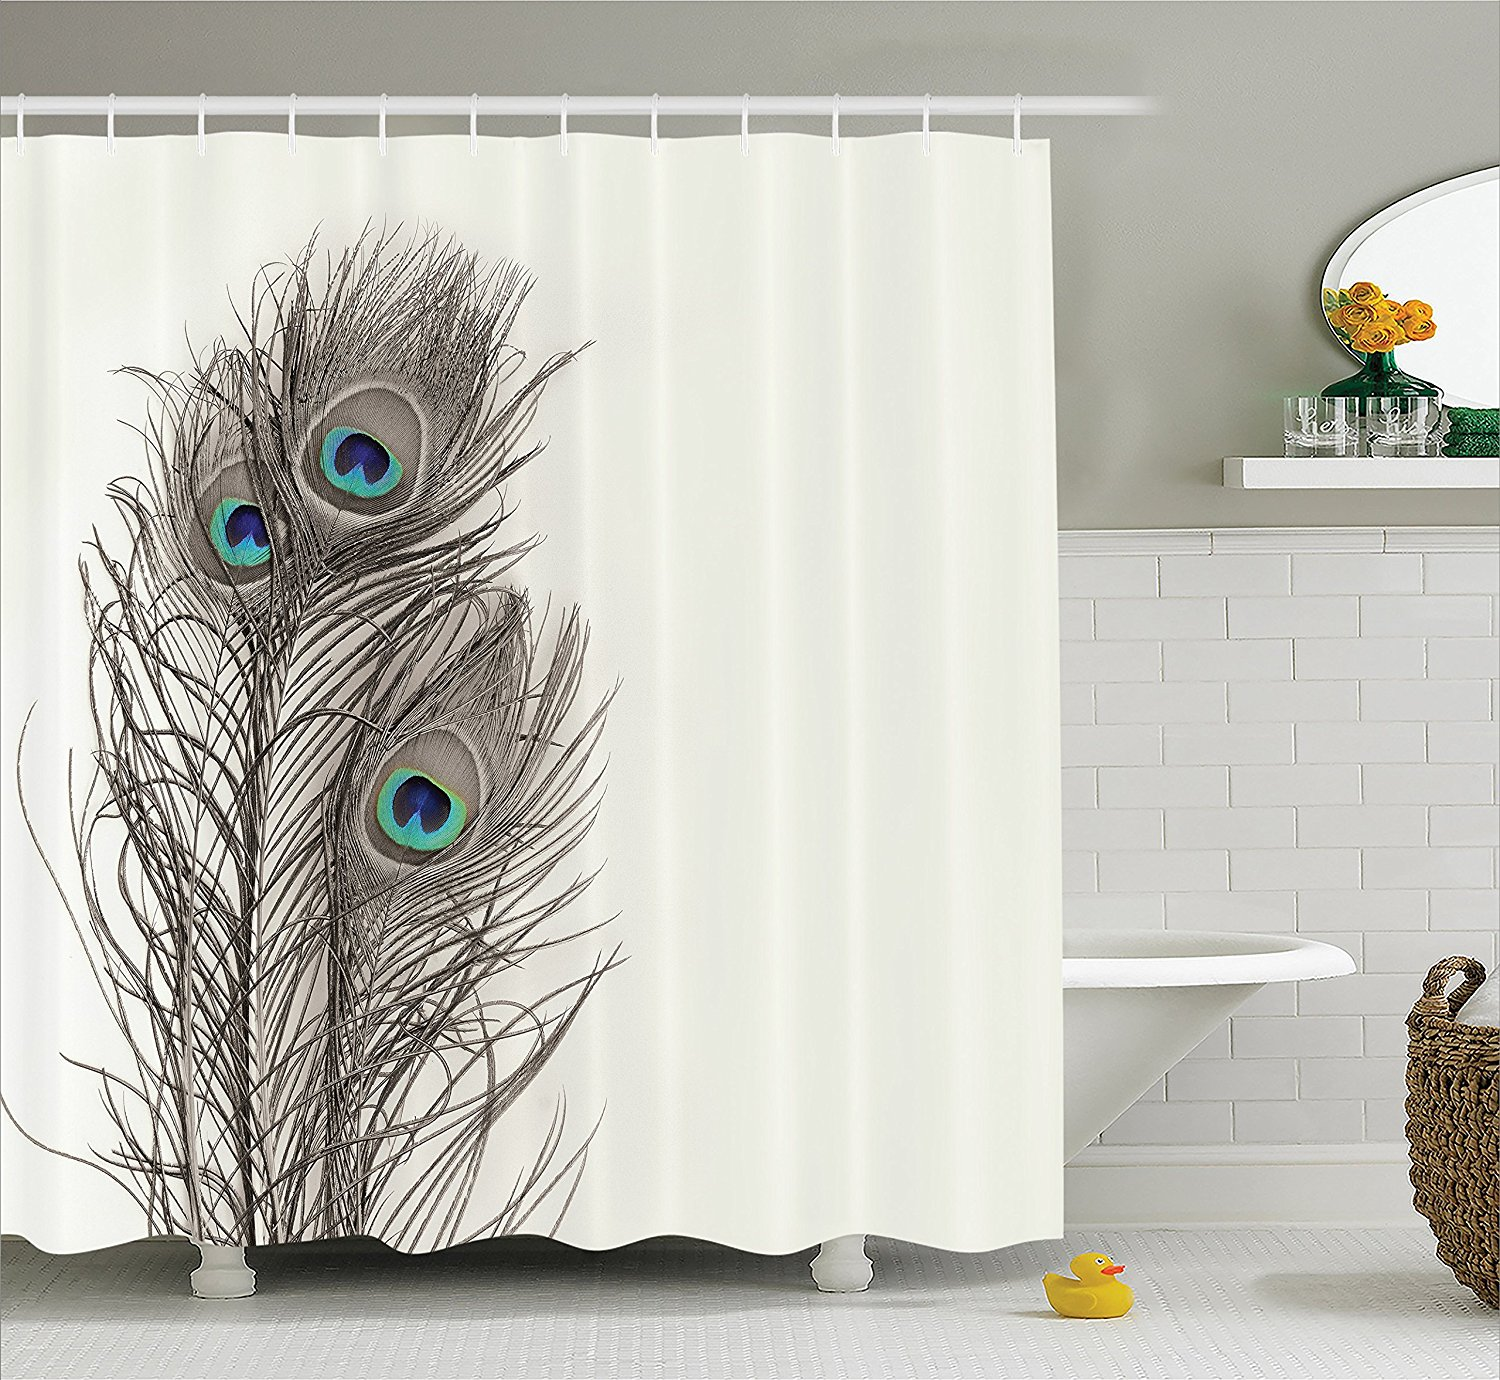 Peacock shower curtain urban outfitters - Warm Tour Natural Peacock Tail Feathers With Eyes Home Designers Fabric Shower Curtain White Gray Turquoise